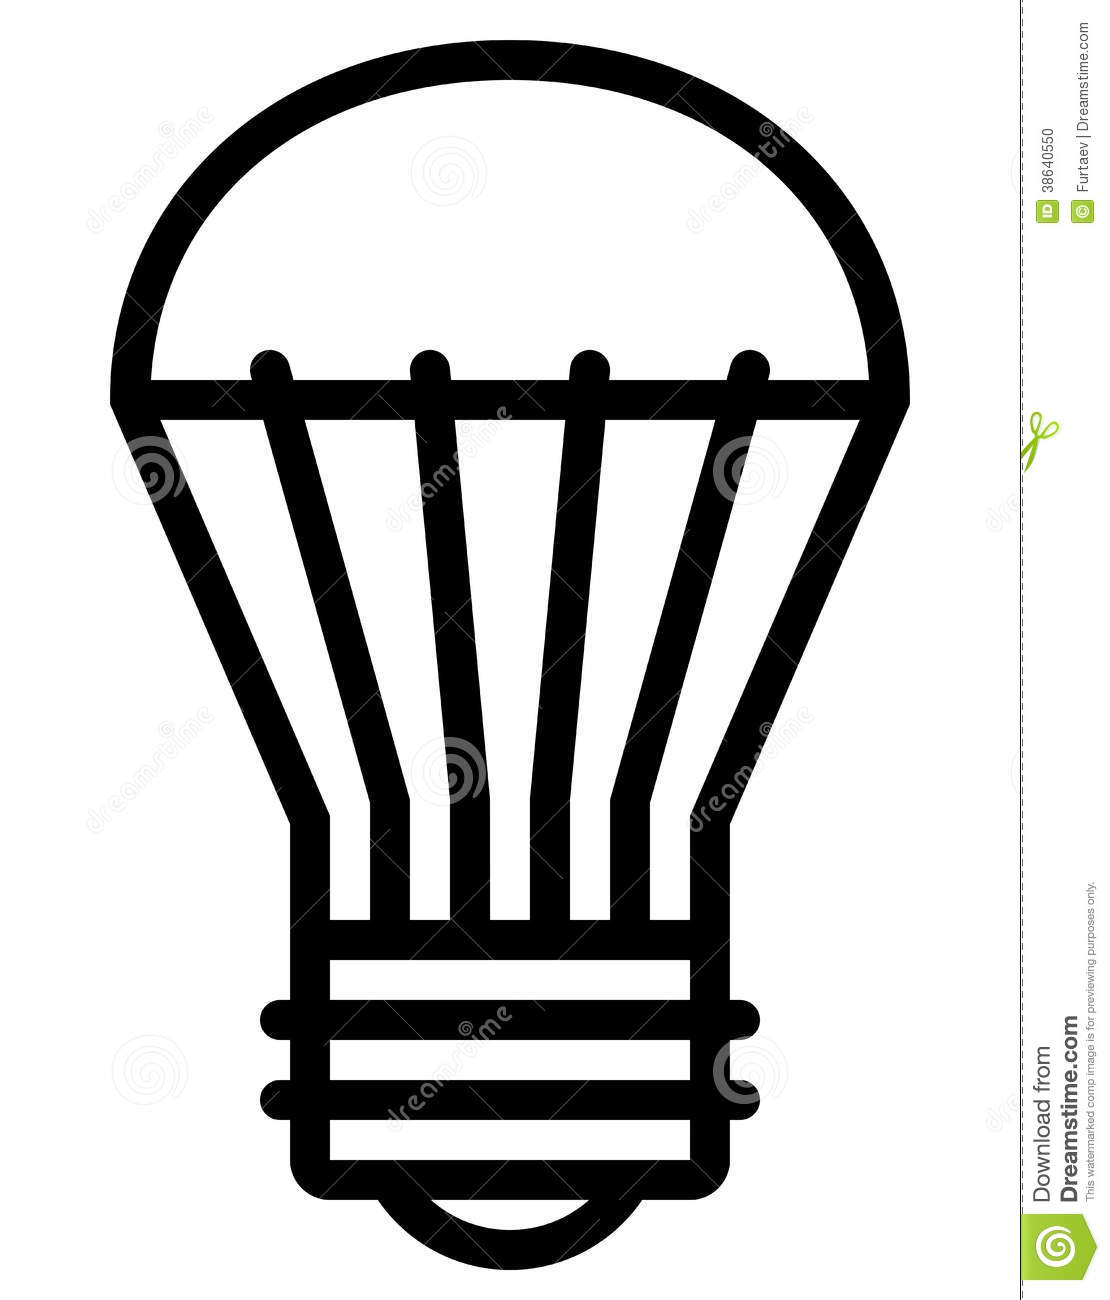 Led light bulb icon stock vector illustration of idea 38640550 led light bulb icon biocorpaavc Images